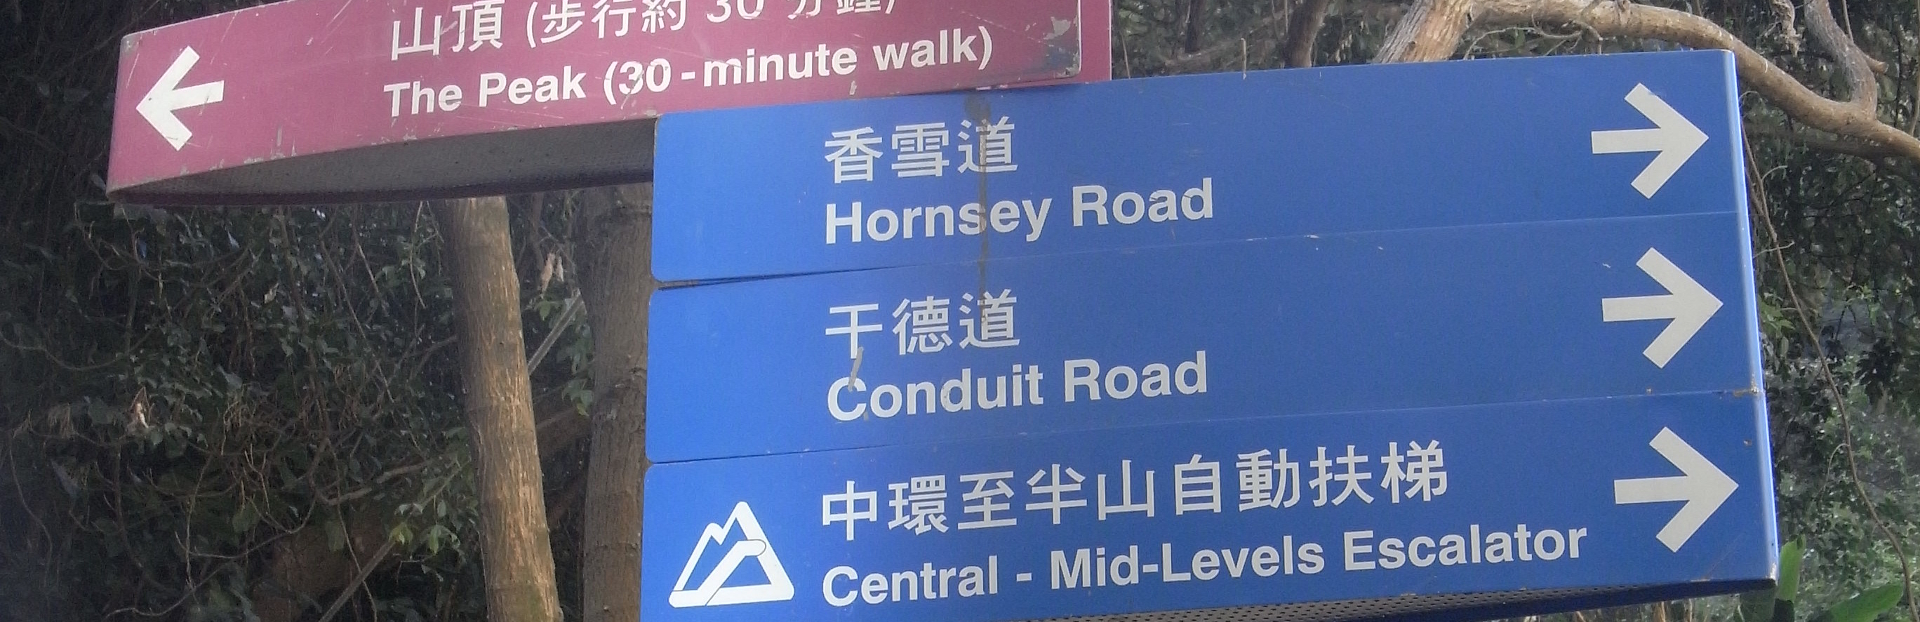 Hk mid levels      old peak road directory signs feb 2011 1